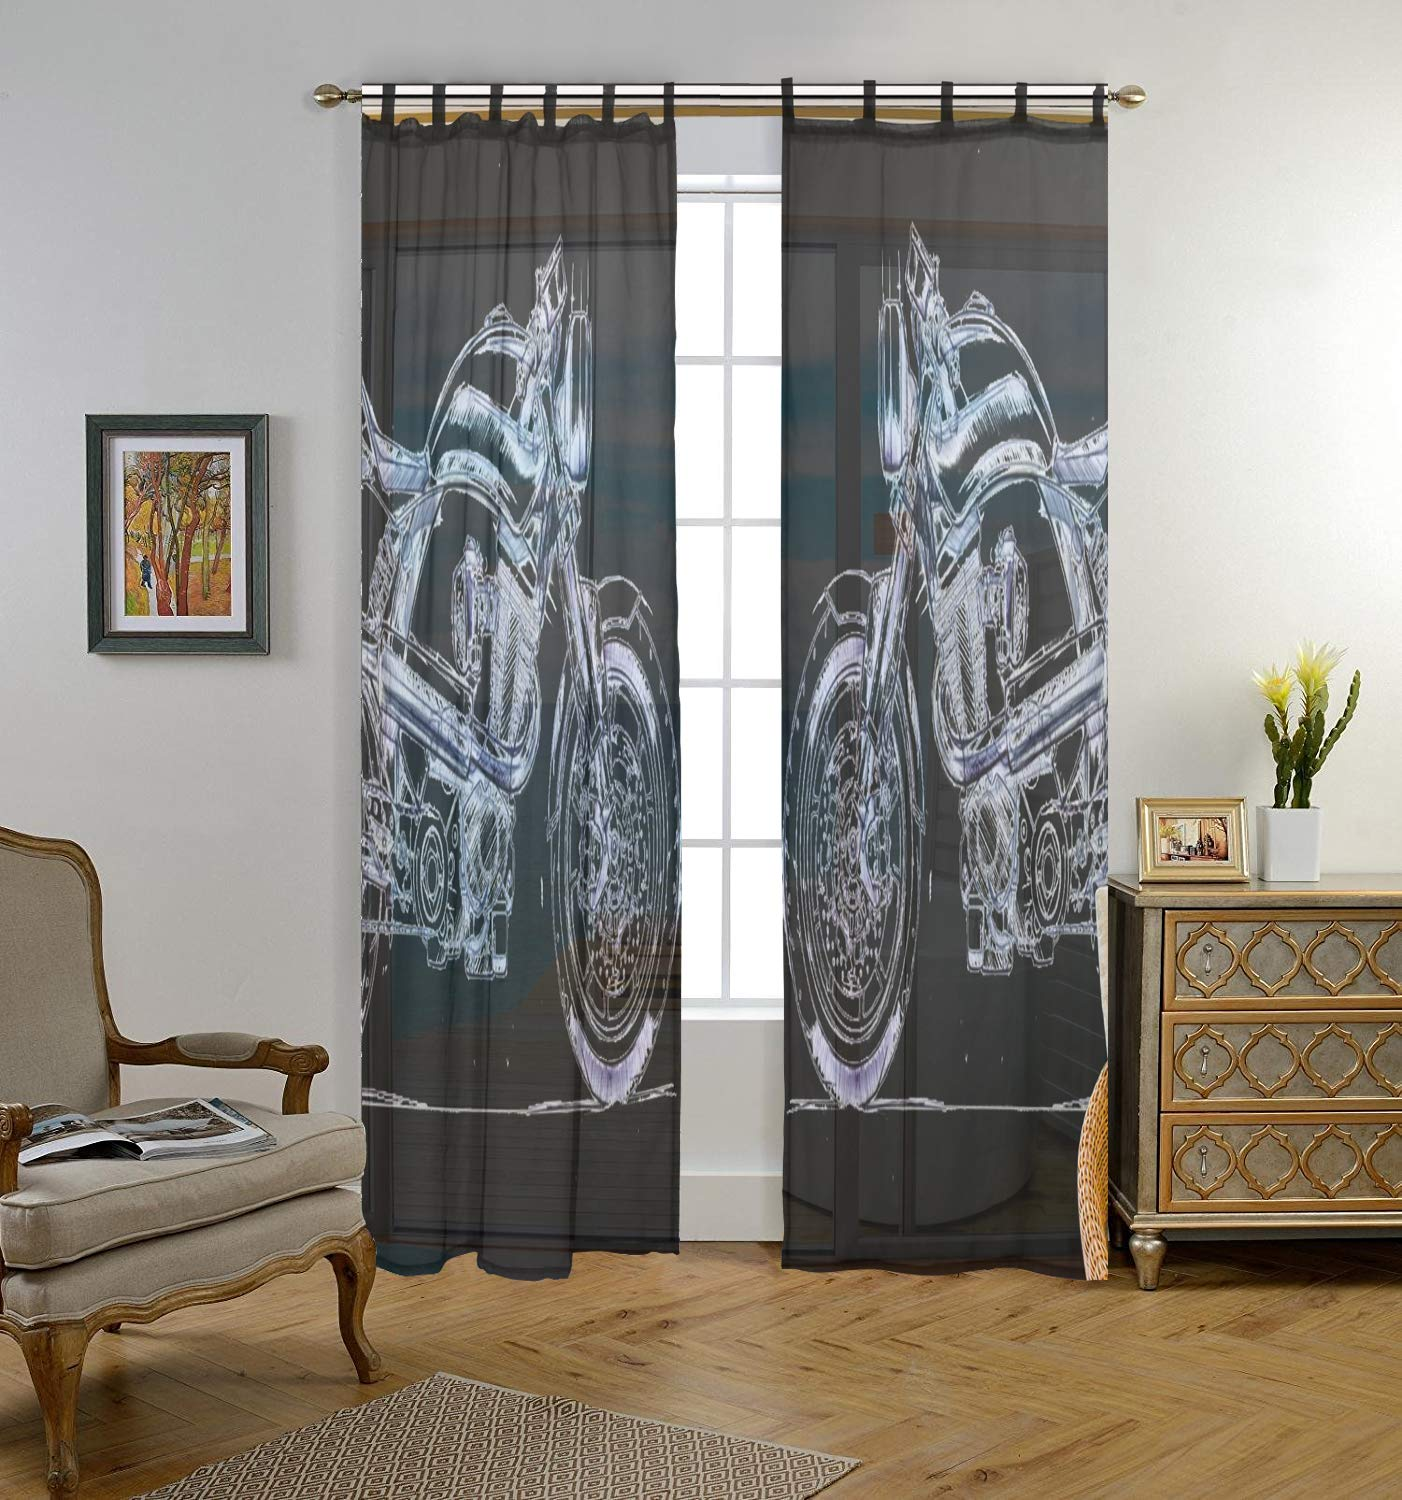 Black Sheer Curtains for Bedroom, Retro Harley Davidson Voile Window Curtain Panels for Living Room 2 Panel Set 55 x 78 Inch